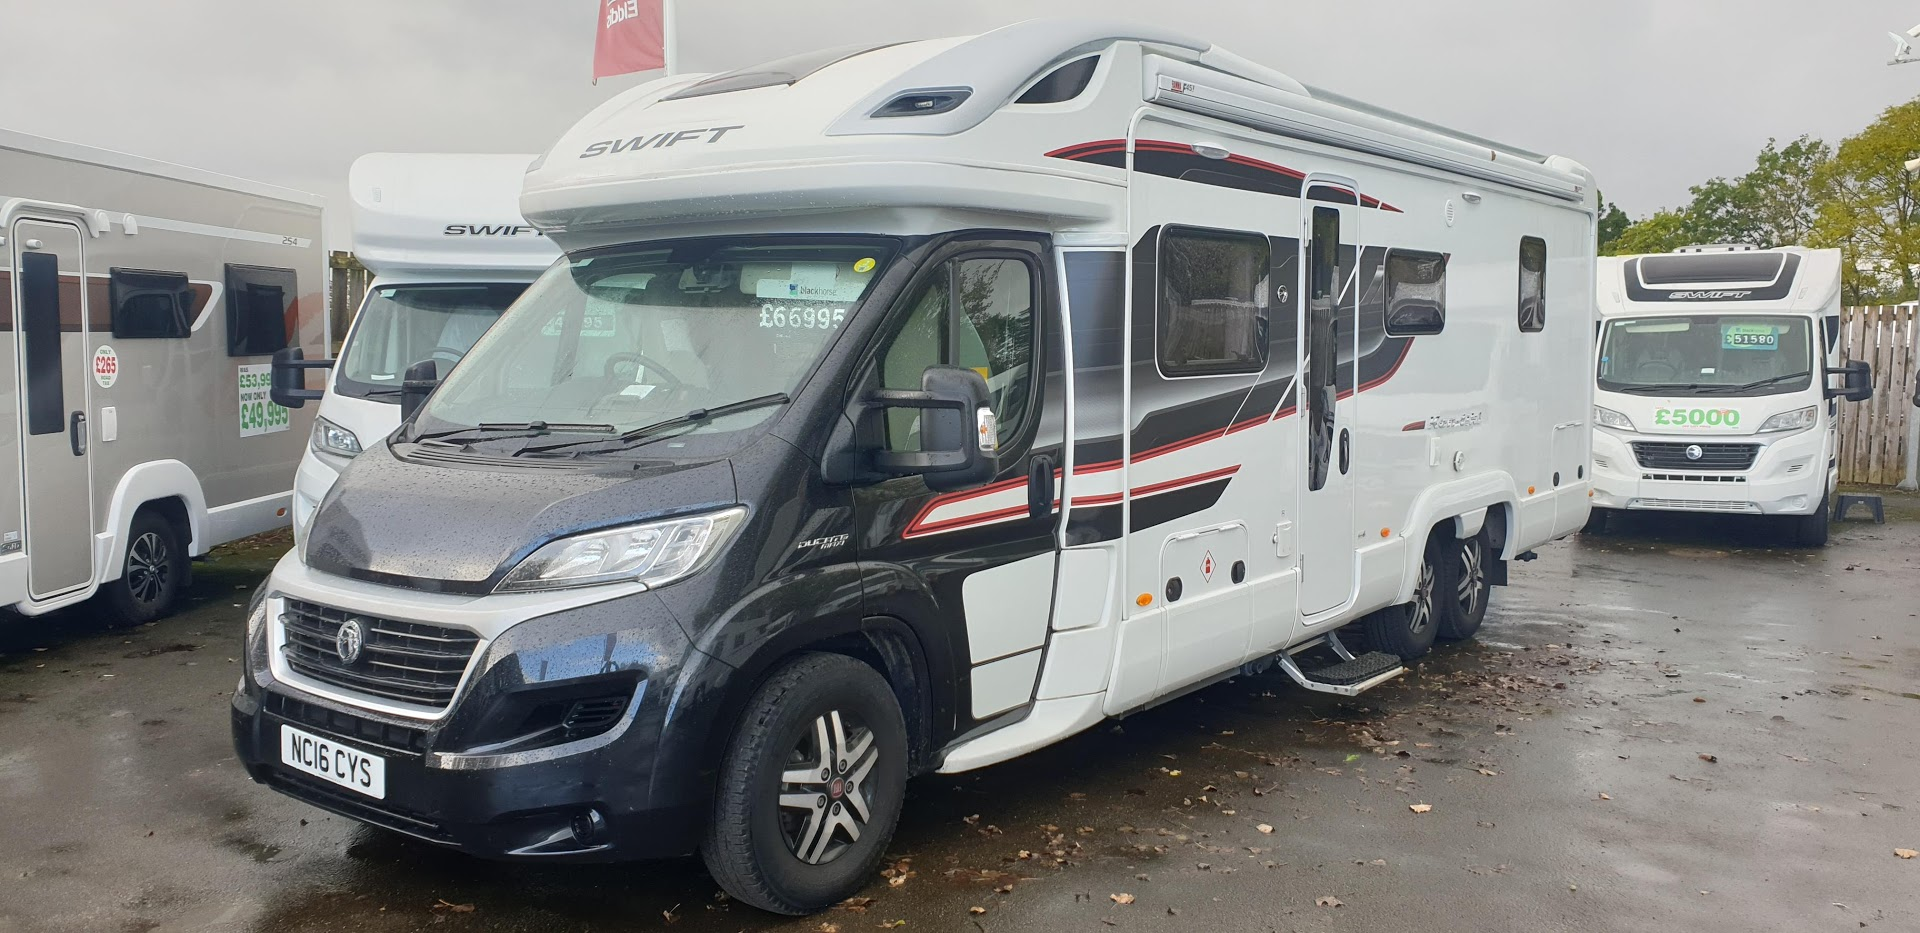 Swift Kontiki 669 Fiat Ducato 3.0 180 Multijet AUTOMATIC